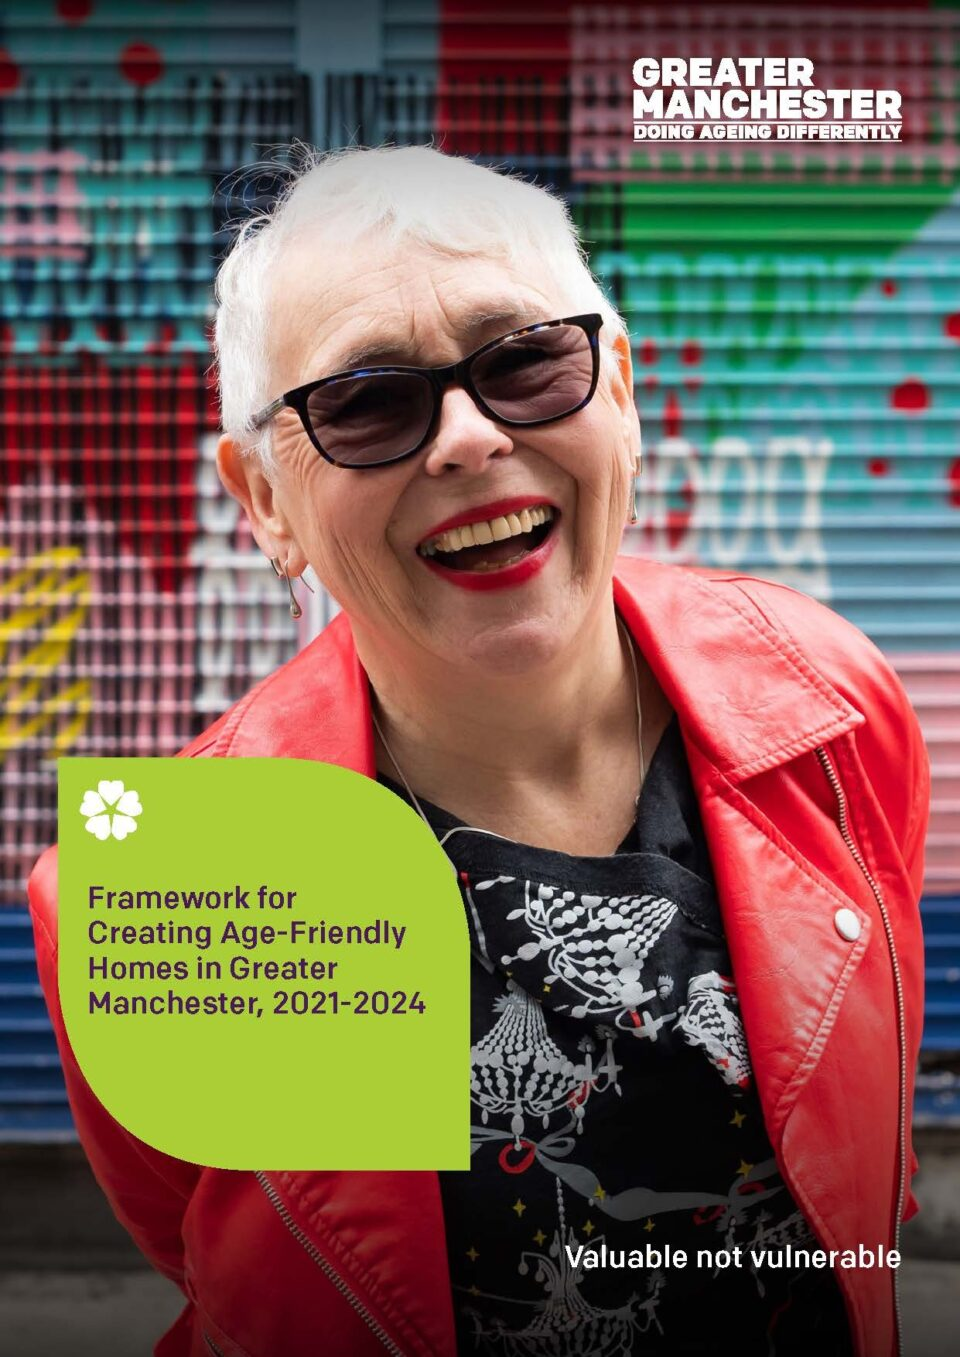 Framework for Creating Age Friendly Homes in Greater Manchester, 2021 - 2024